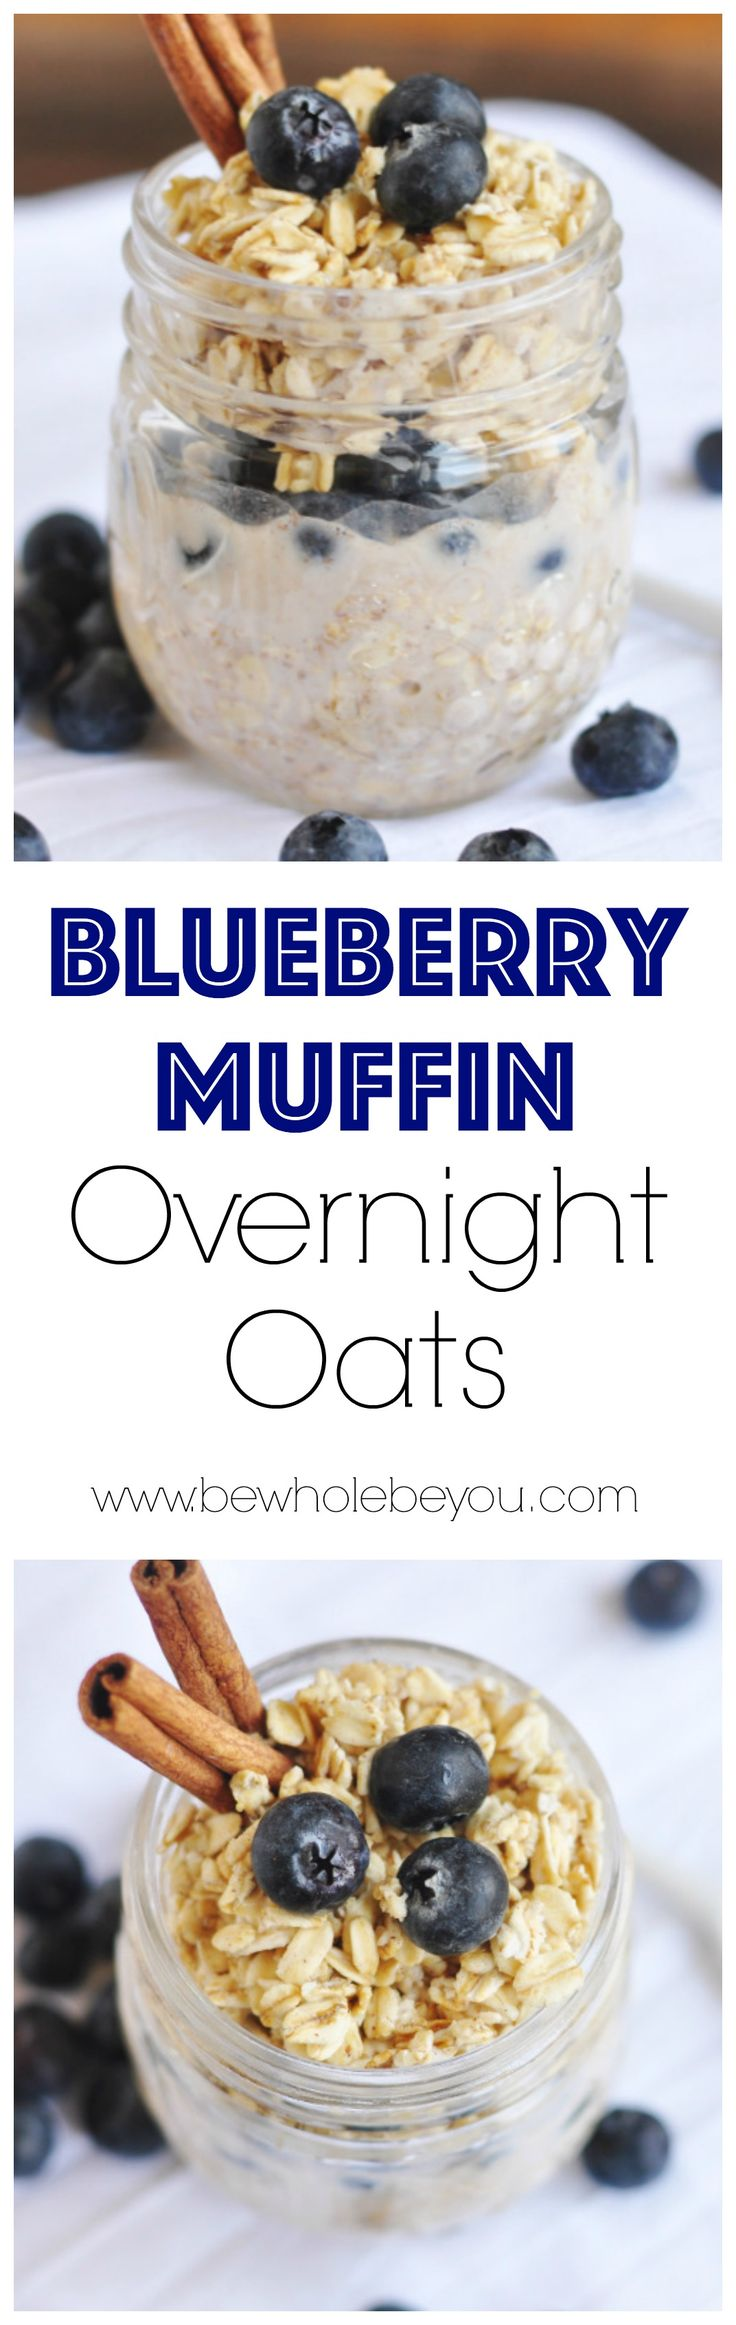 Blueberry Muffin Overnight Oats. Be Whole. Be You.